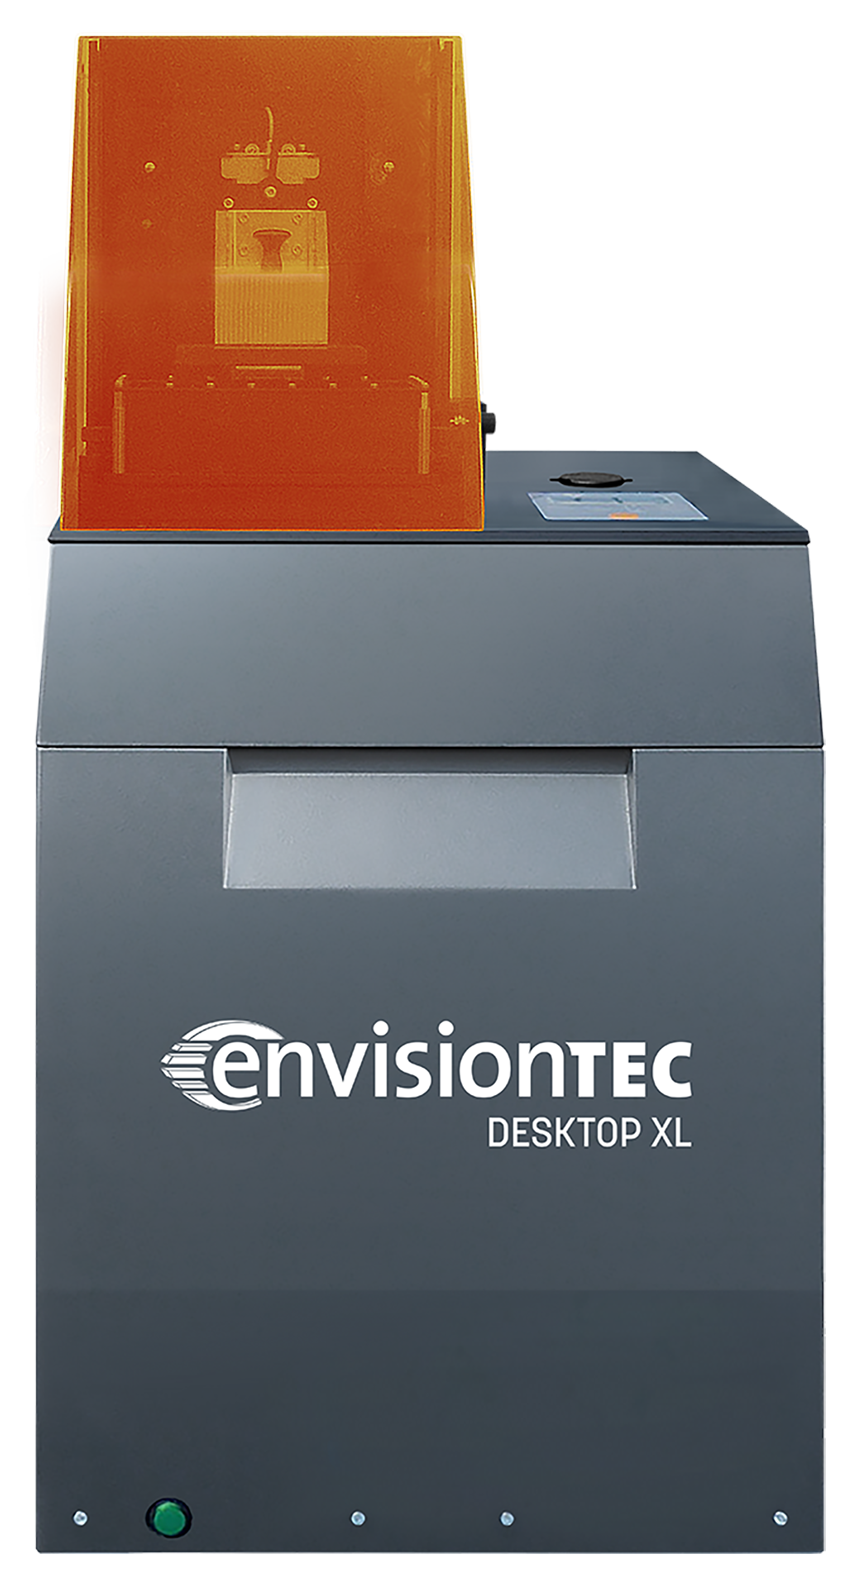 EnvisionTEC Desktop XL Plus